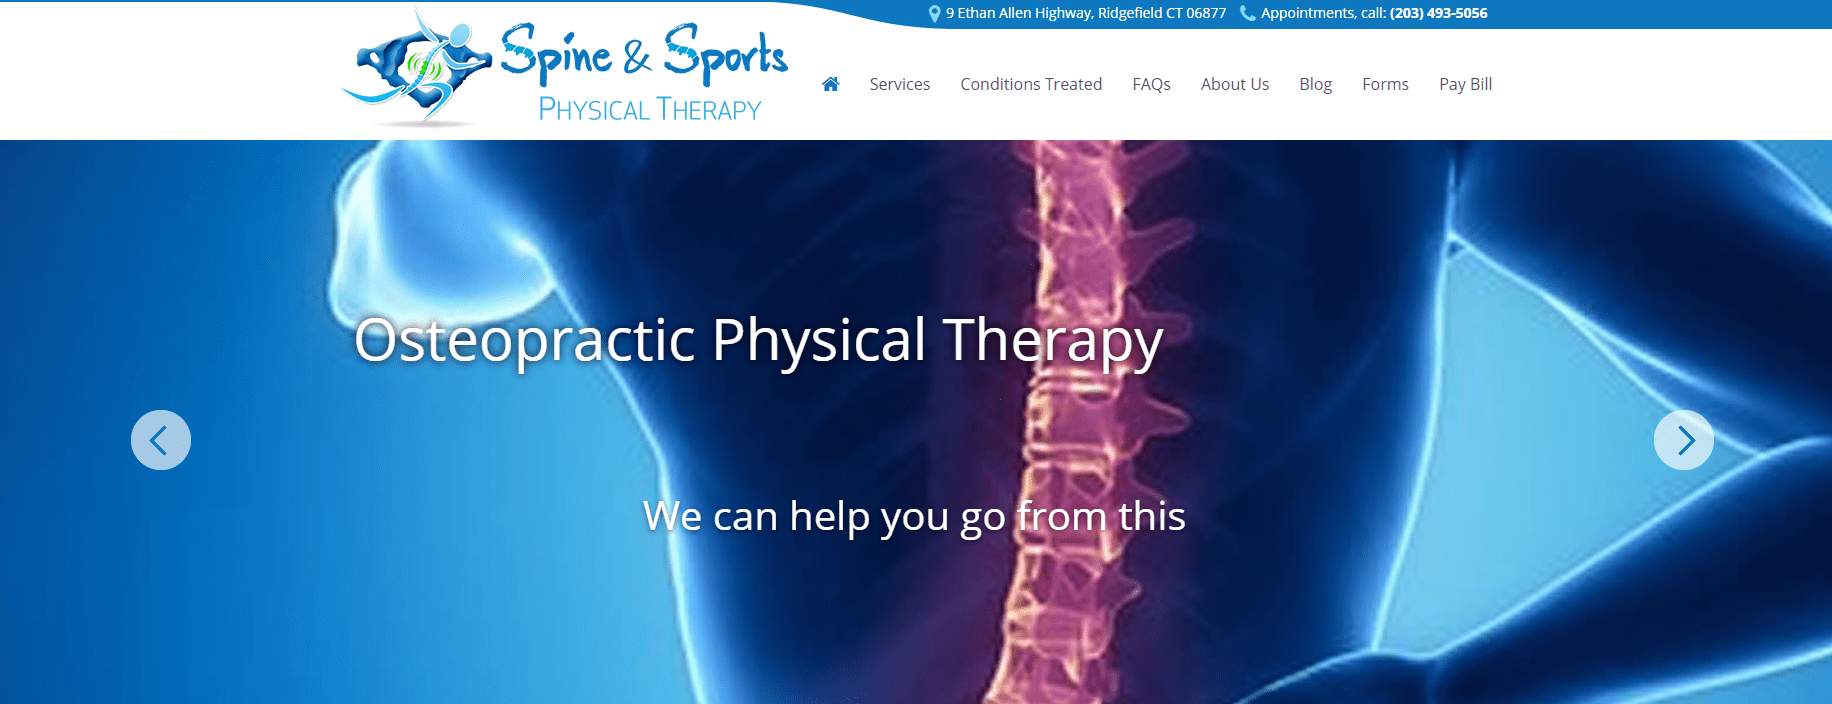 New Site Launch: Spine & Sports Physical Therapy